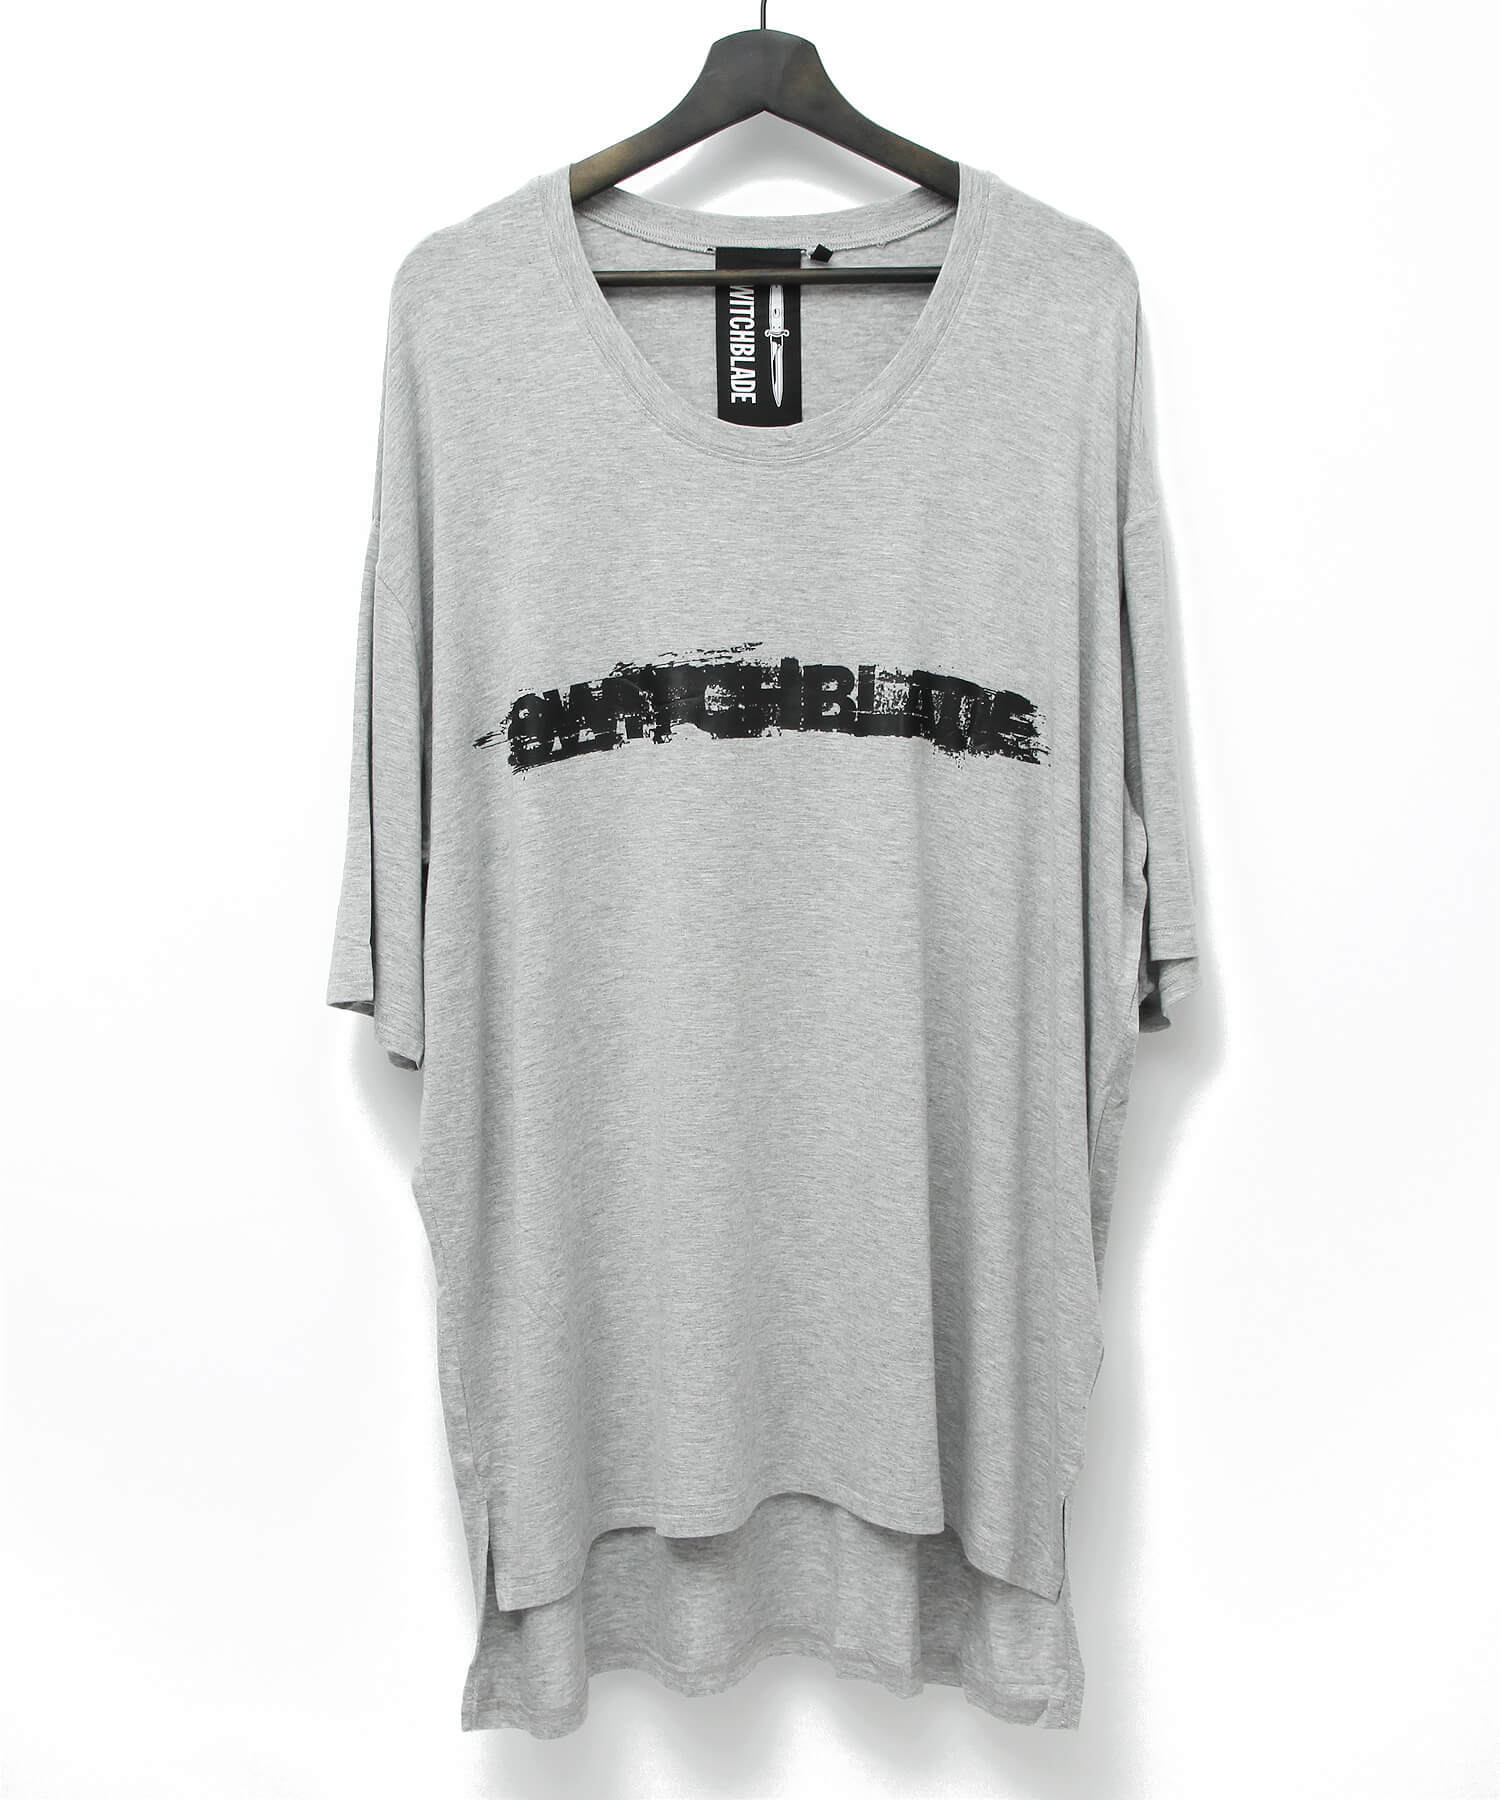 KEEP A KNIFE TEE [GRAY]